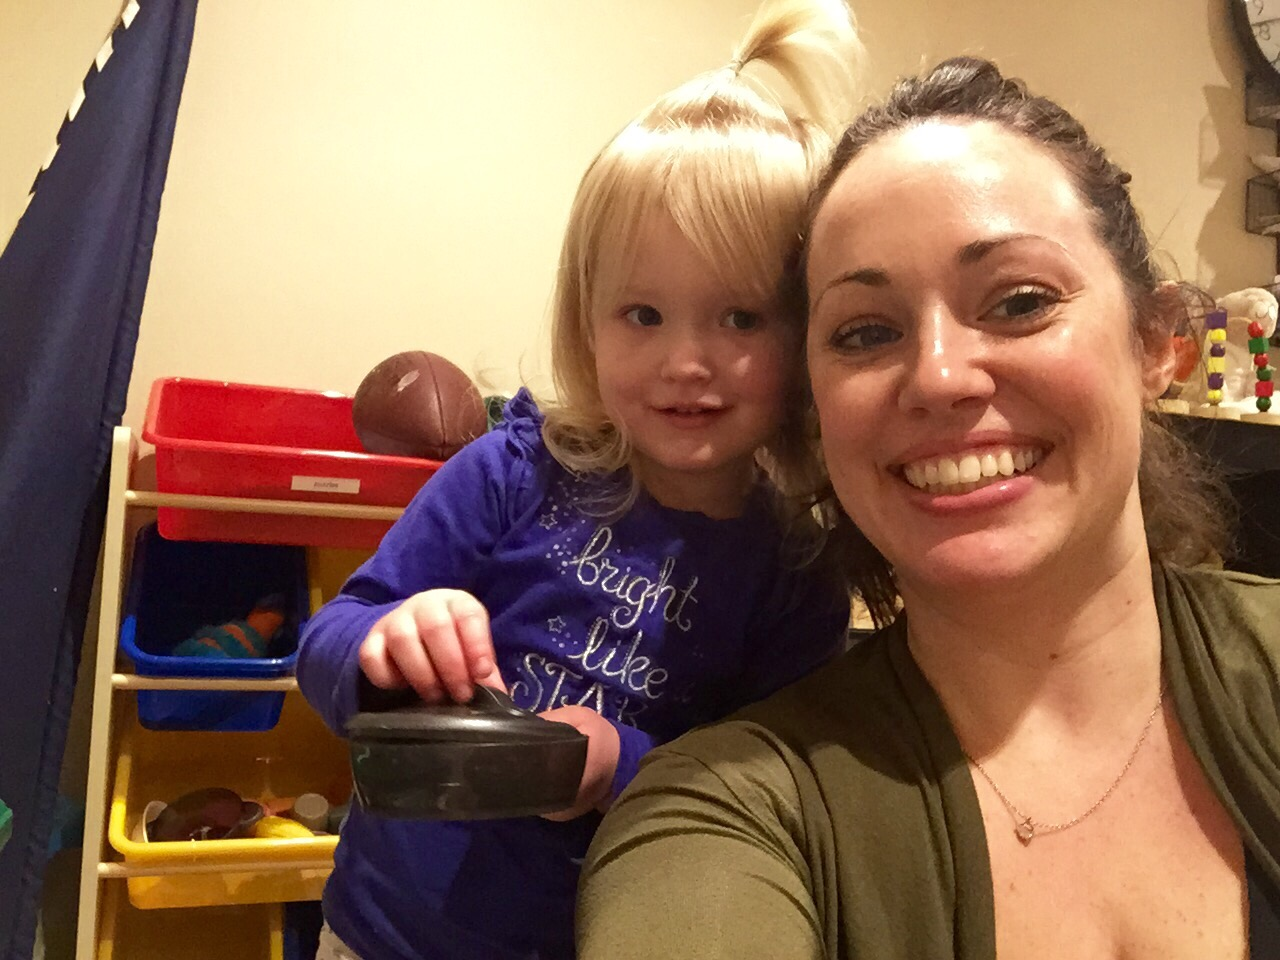 Playtime mom and Ellie selfie